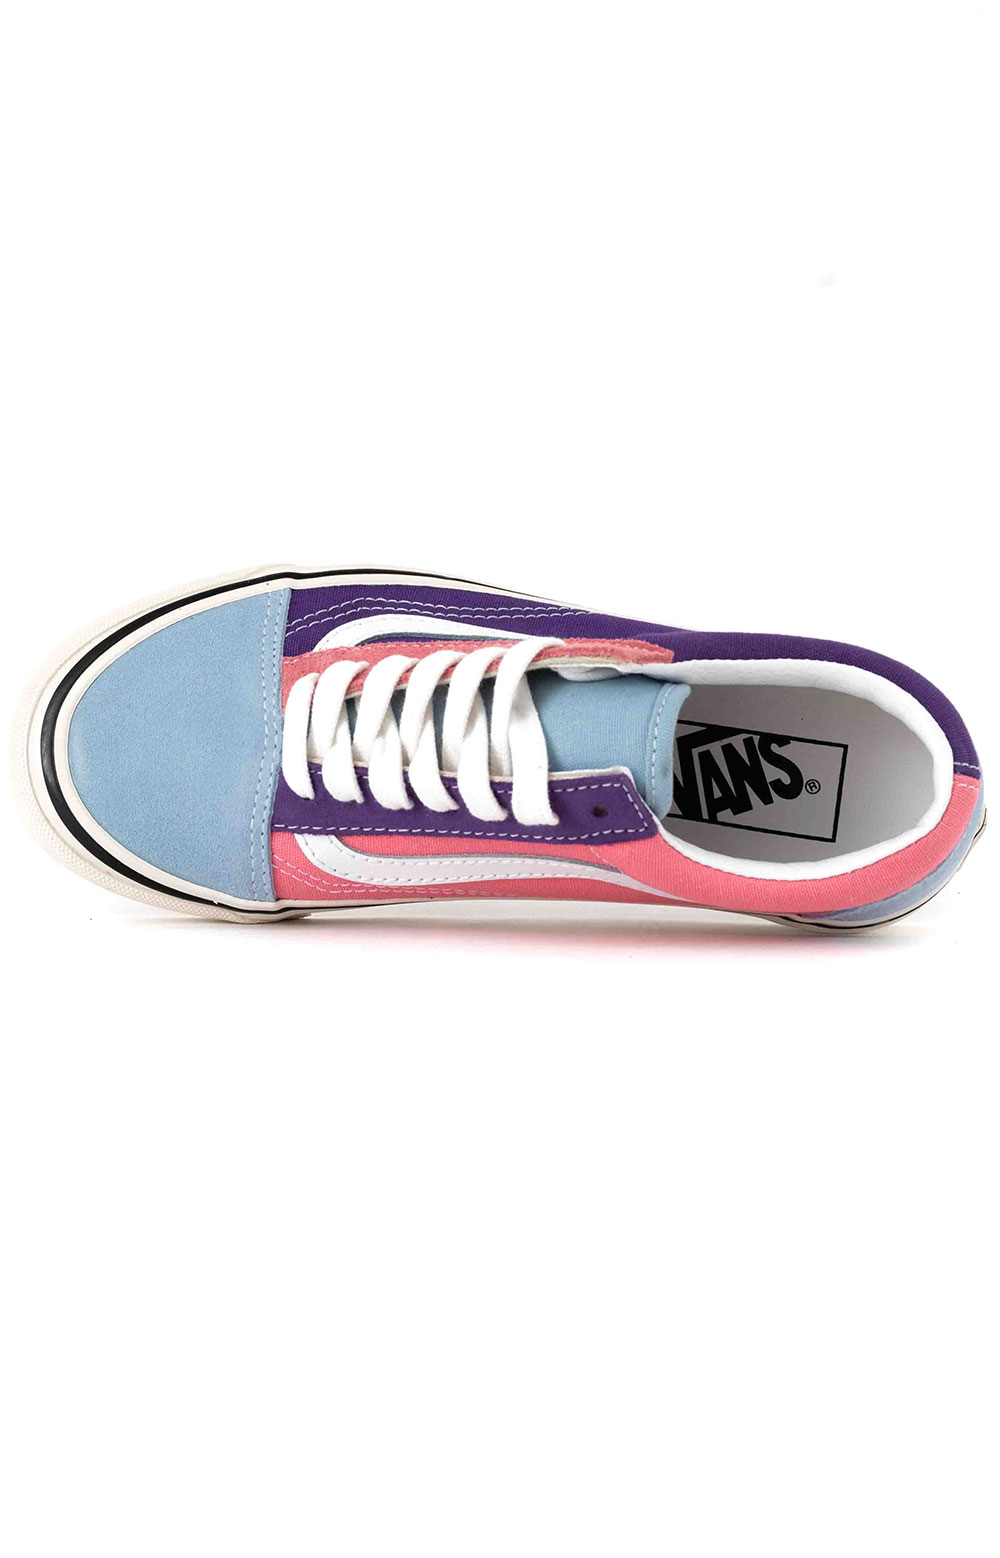 (8G2XFL) Anaheim Factory Old Skool 36 DX Shoes - OG Light Blue/OG Purple/OG Pink 2